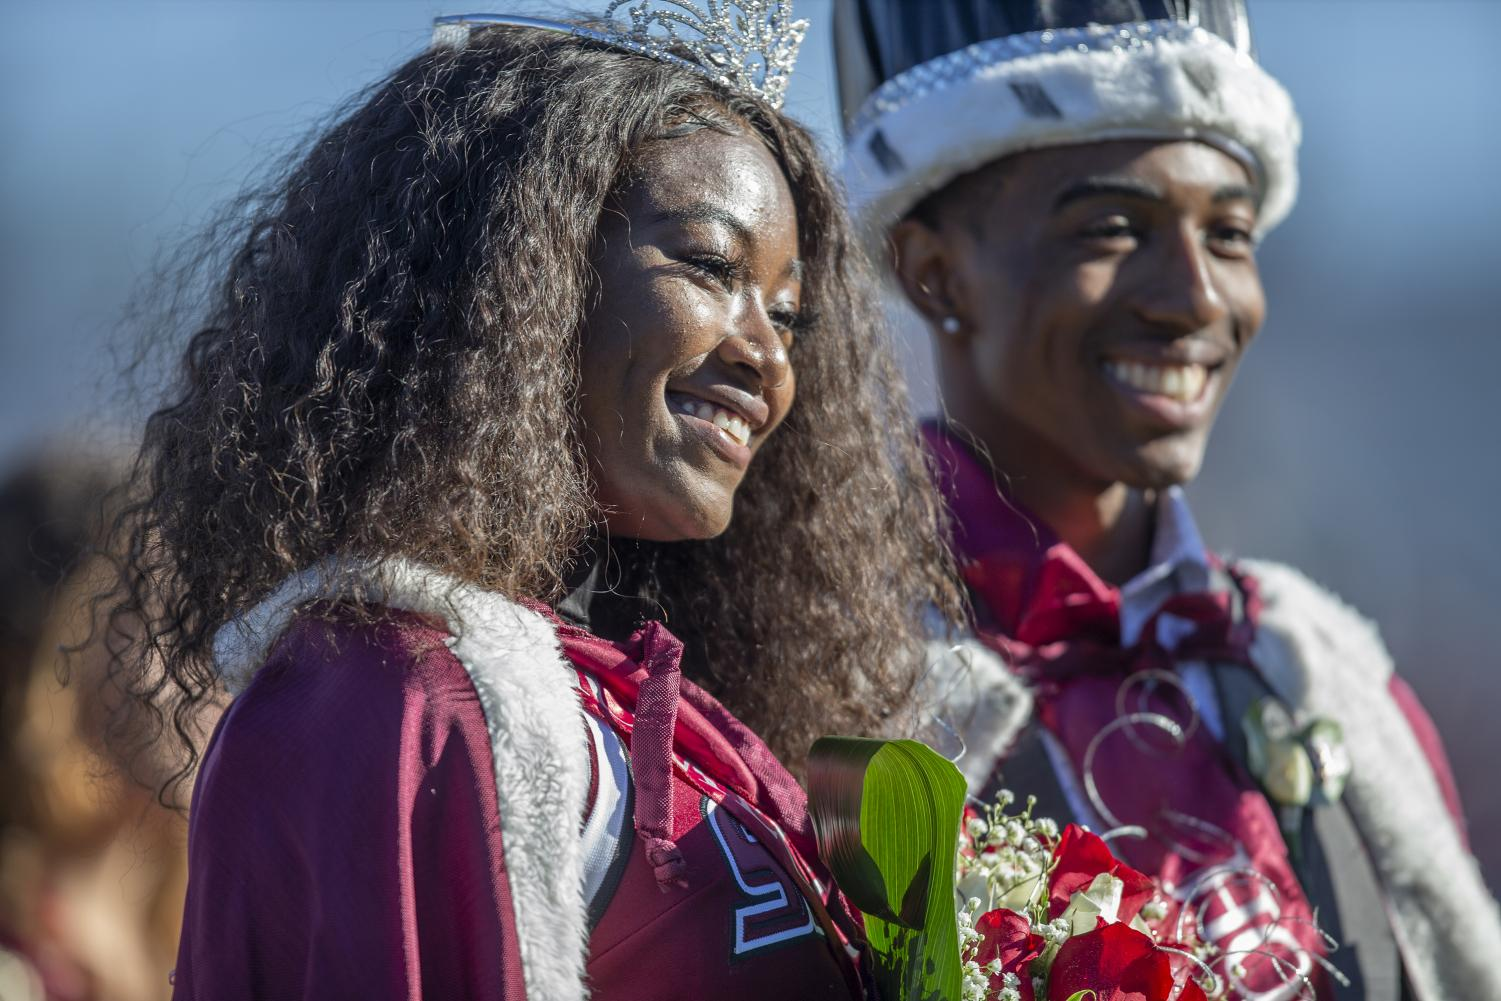 Homecoming+queen+Alaysia+Brandy%2C+a+junior+studying+biological+sciences+and+pre-medicine+poses+with+homecoming+king+Toussaint+Mitchell%2C+a+junior+studying+cinema+and+photography+during+of+the+Salukis%27+24-21+loss+against+the+Indiana+State+Sycamores+at+Saluki+Stadium%2C+Saturday%2C+Oct.+20%2C+2018.+%28Isabel+Miller+%7C+%40IsabelMillerDE%29